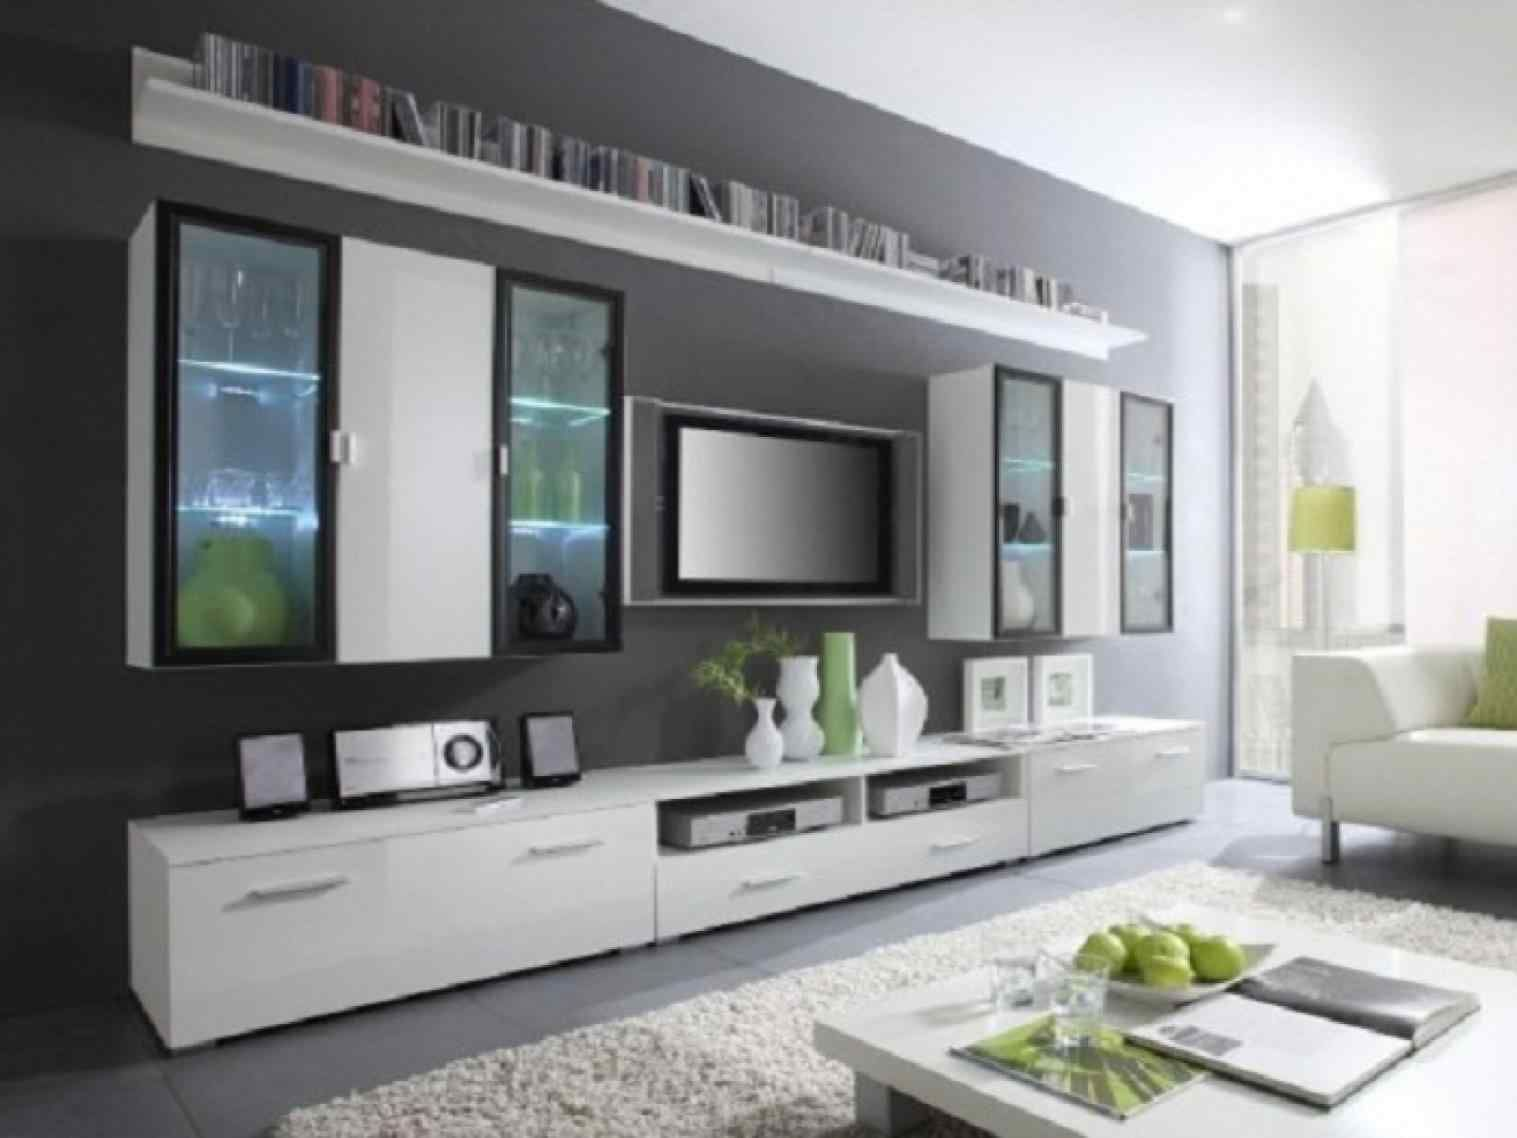 20 Stunning Tv Stands Ideas For Wall Mounted Tv Breakpr Tv Wall Unit Tv Wall Design Living Room Tv